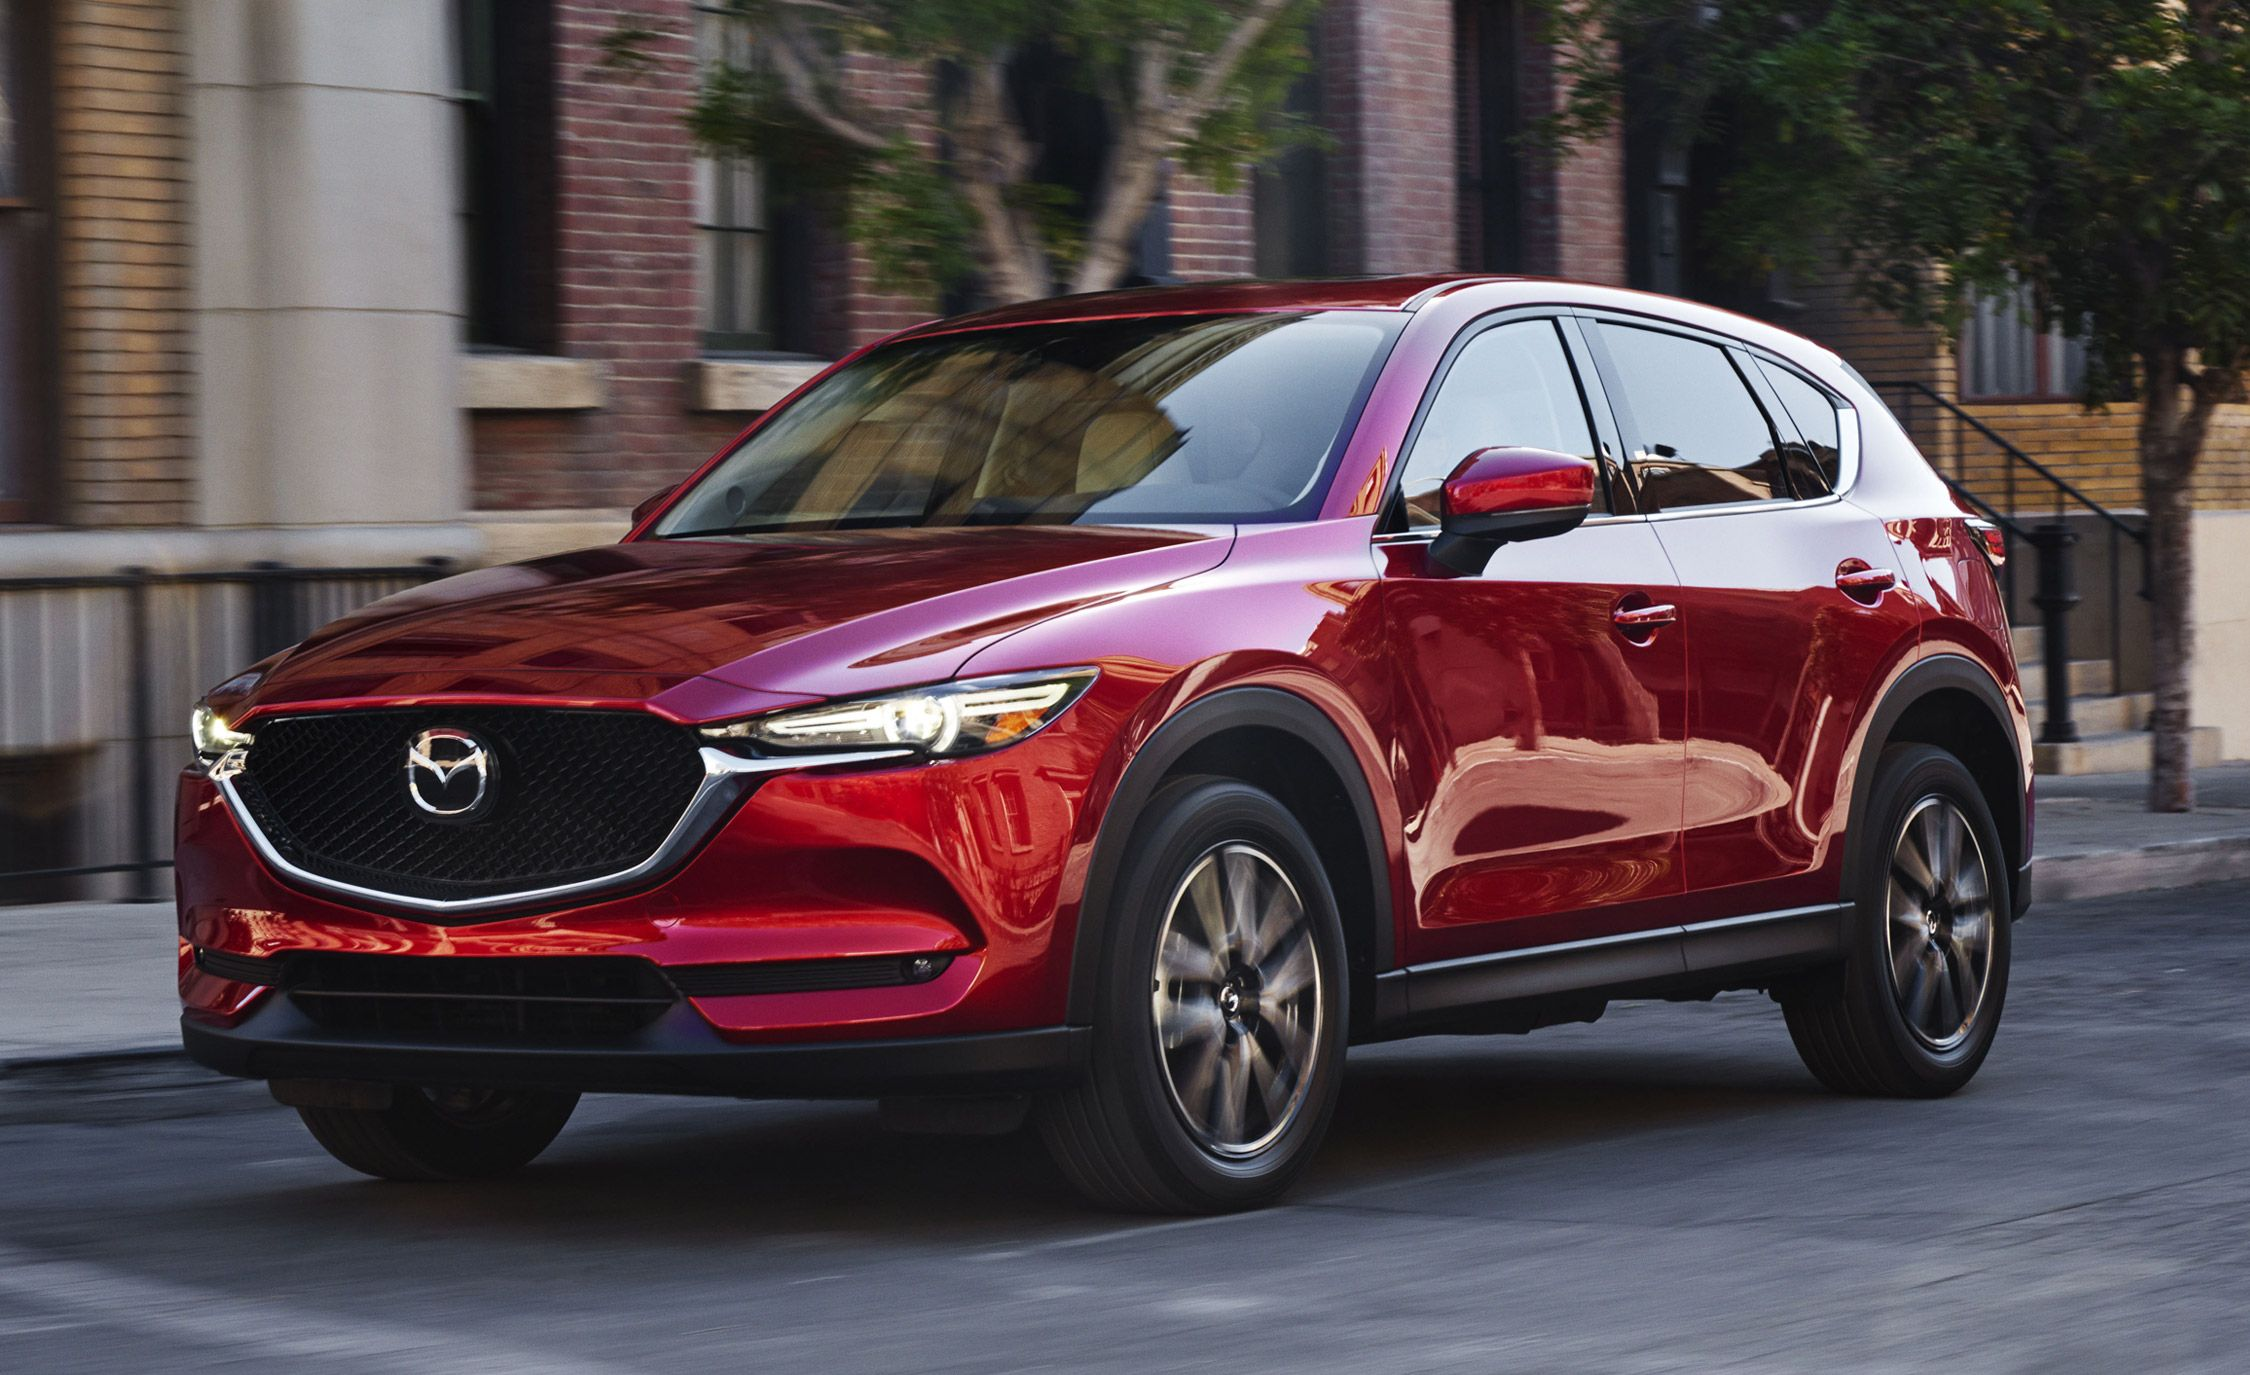 Image result for mazda cx-5